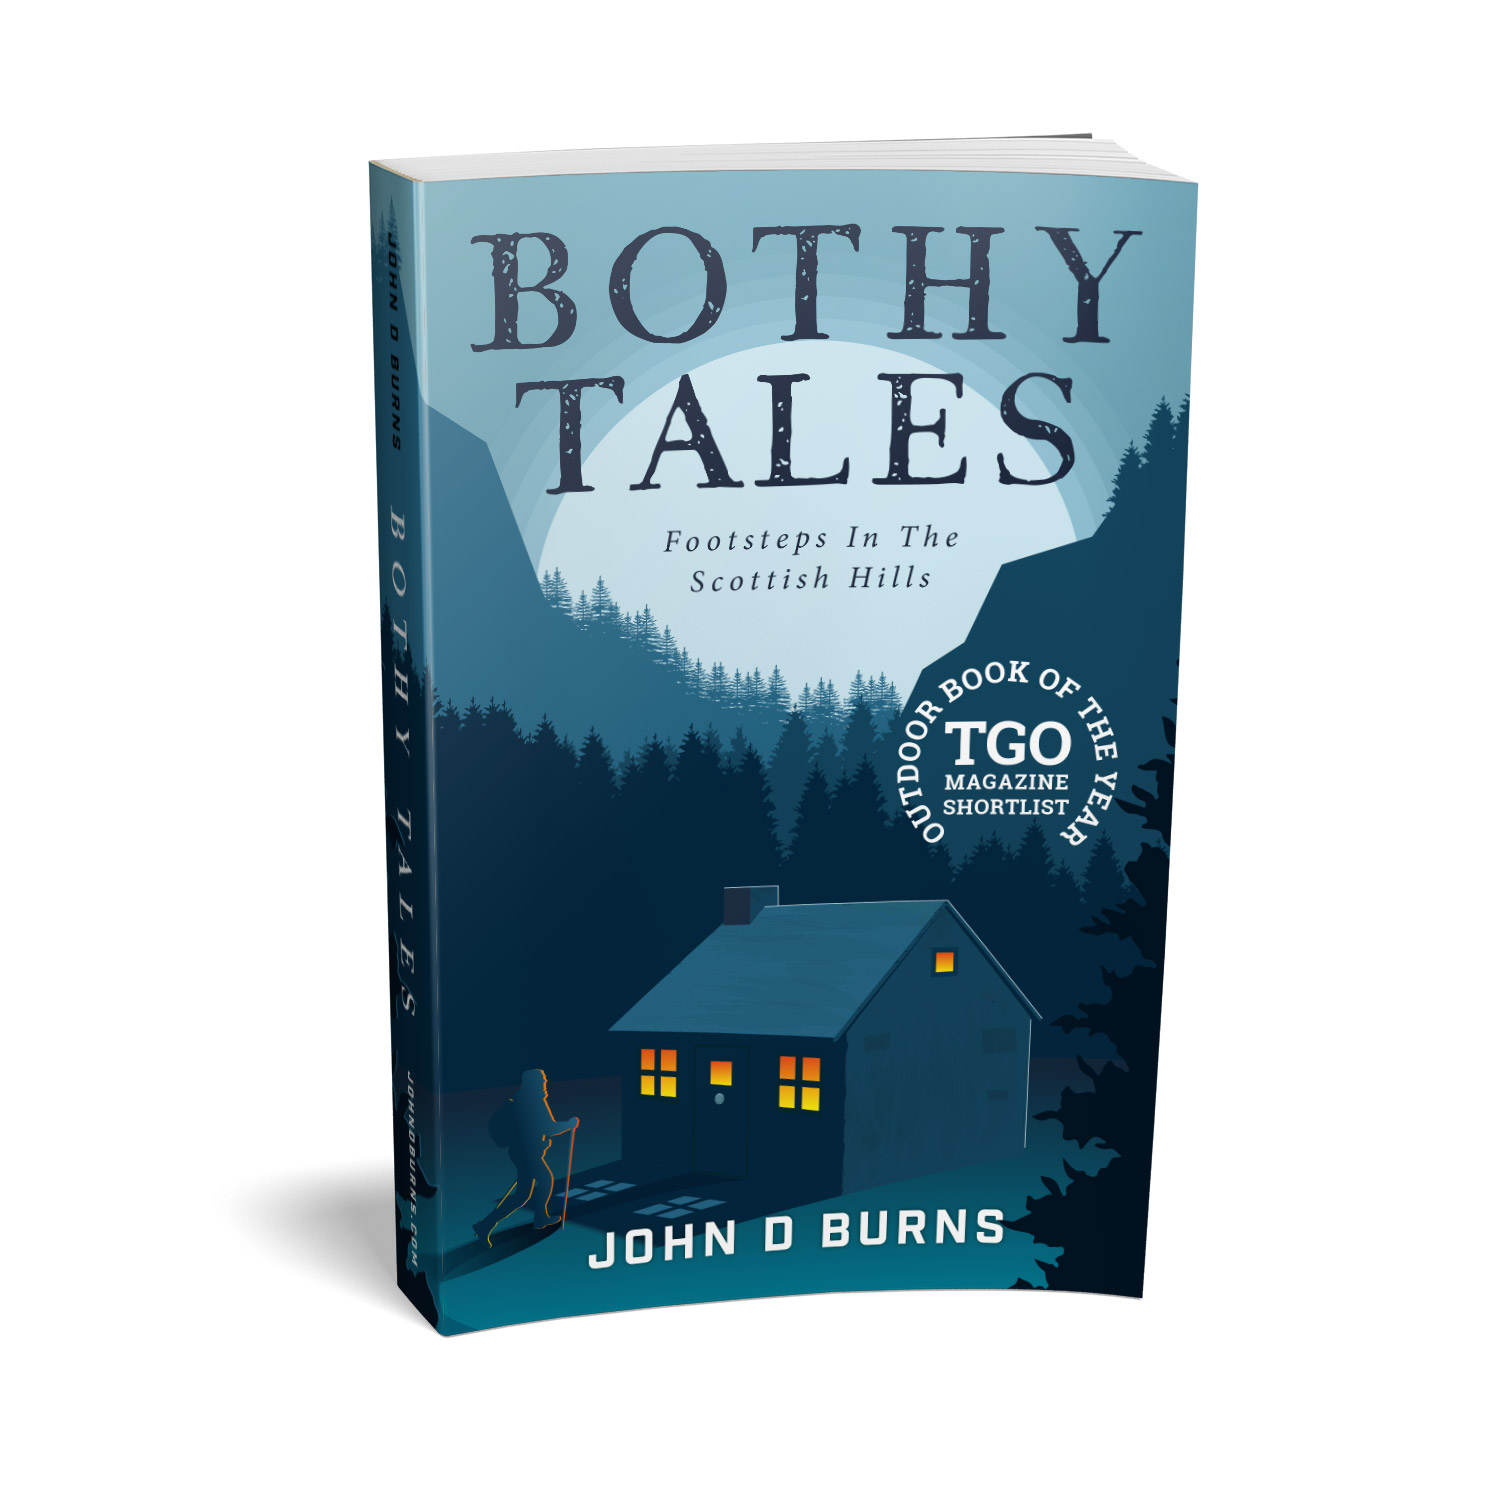 'Bothy Tales' is a bespoke cover design for a personal, retrospective hillwalking memoir. The book cover was designed by Mark Thomas, of coverness.com. To find out more about my book design services, please visit www.coverness.com.